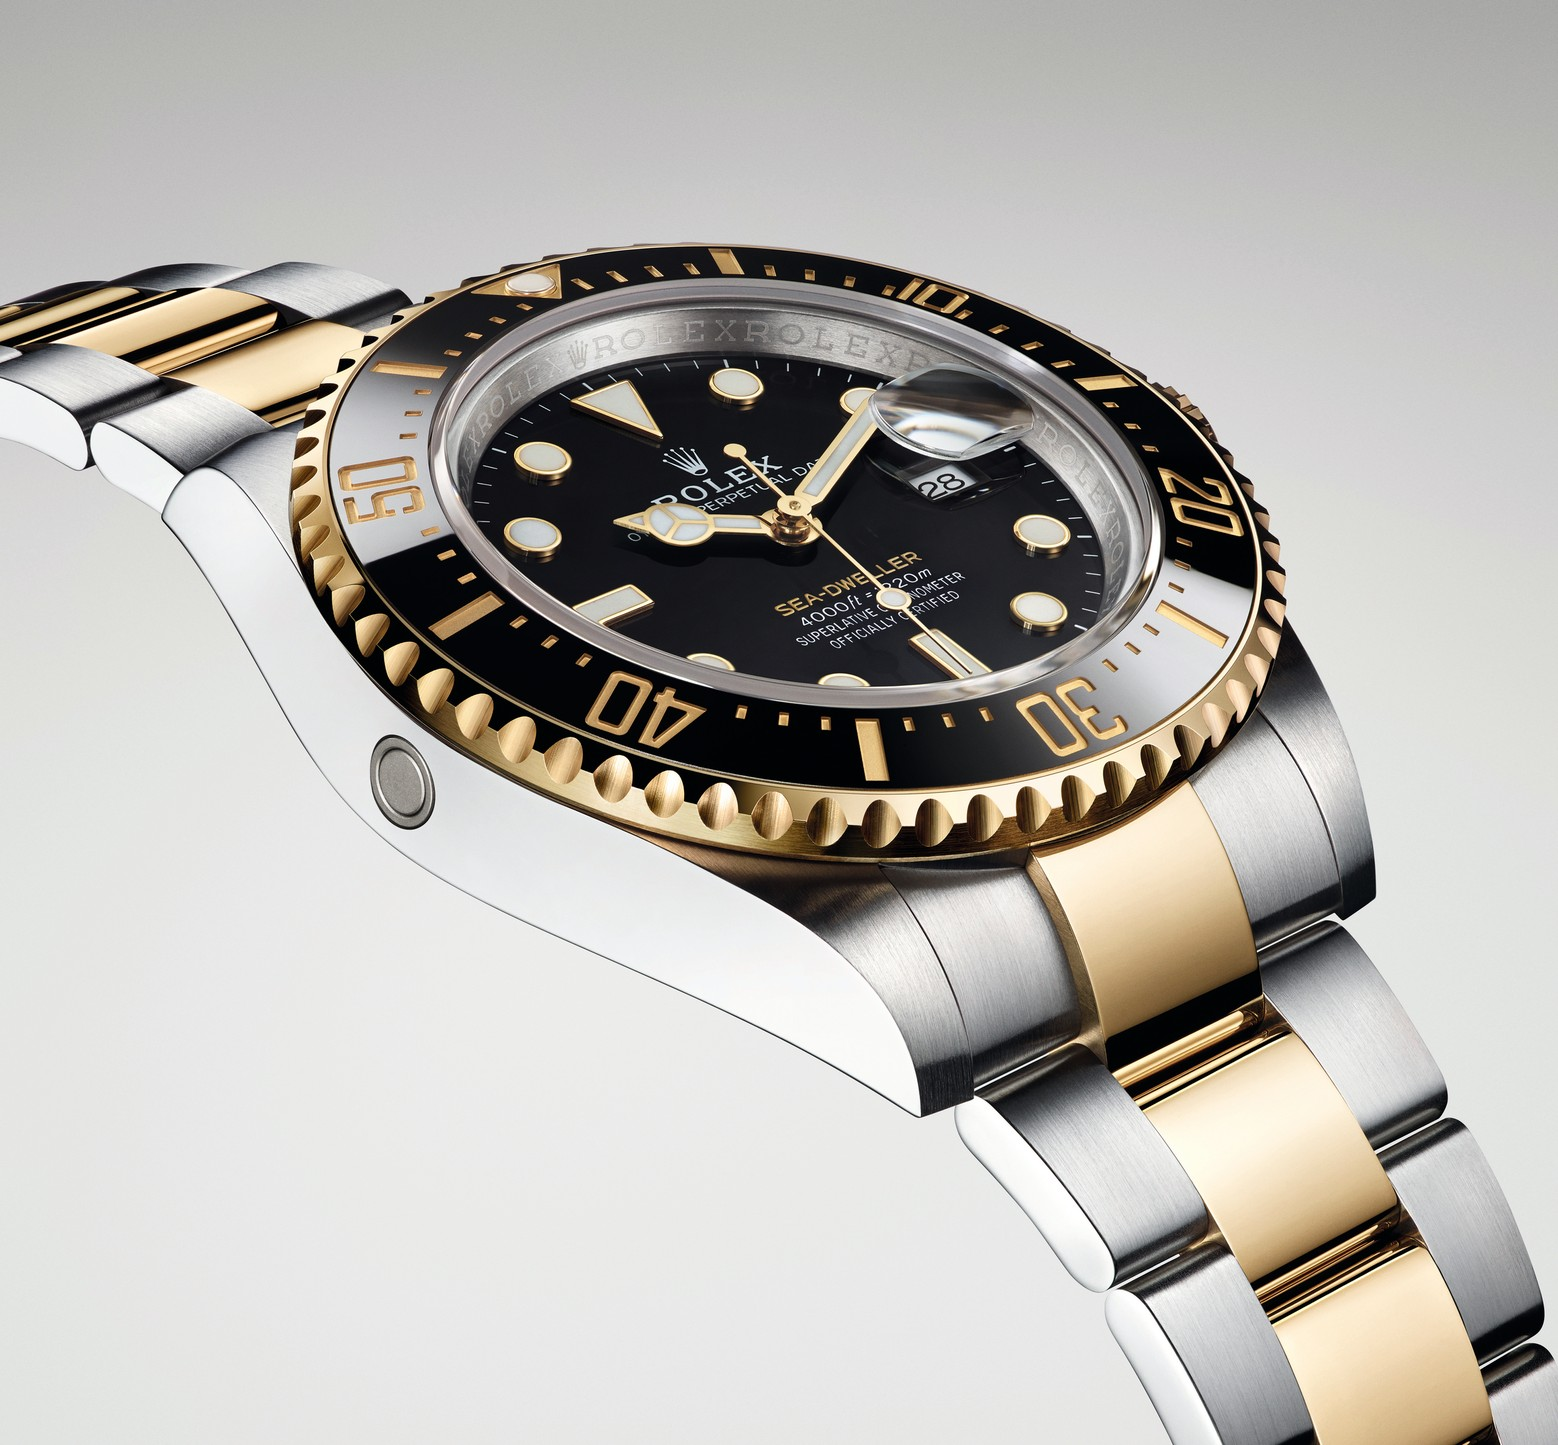 542048430f5d7 Price for the Rolex Sea-Dweller 43mm Yellow Rolesor 126603 will be CHF  15,300. For more information, please visit www.rolex.com.